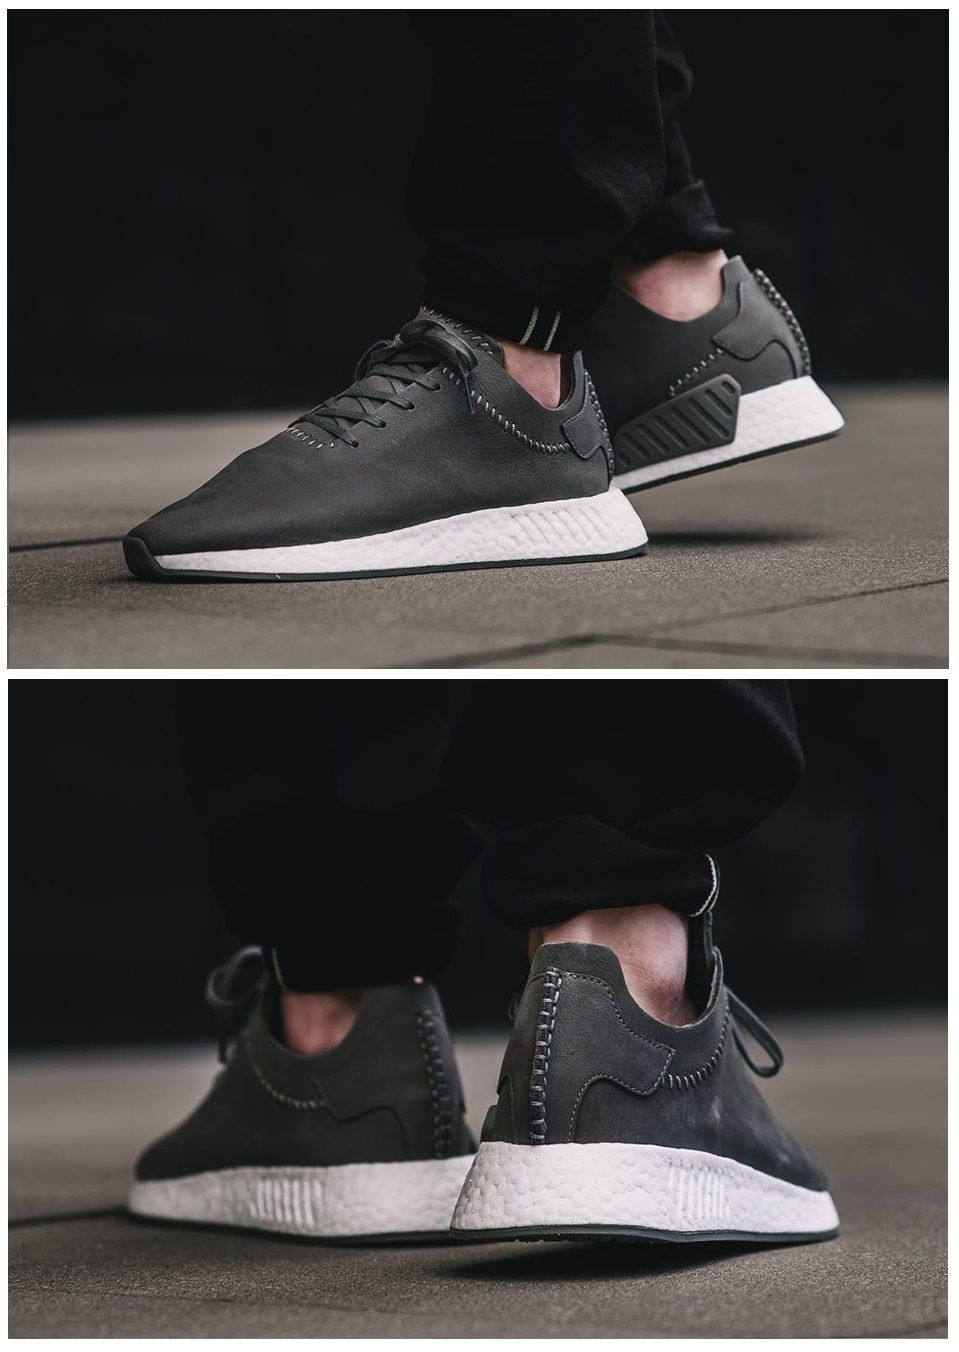 wings horns adidas originals nmd r2 shoes pinterest nmd